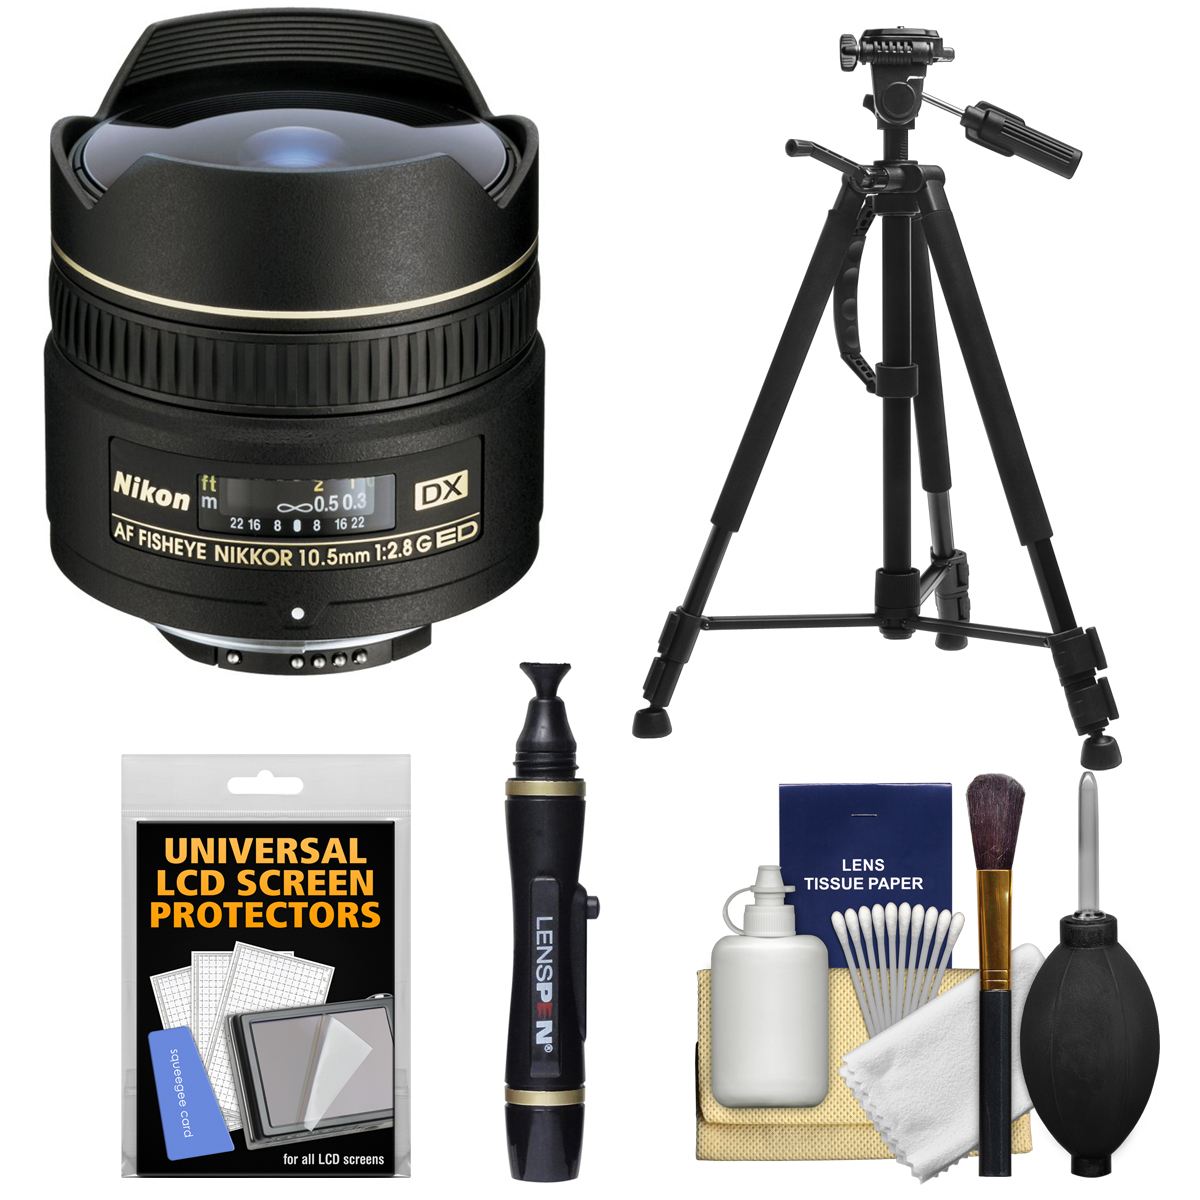 Nikon 10.5mm f/2.8G ED DX AF Fisheye-Nikkor Lens with Tripod + Kit for D3100, D3200, D3300, D5100, D5200, D5300, D7000, D7100 DSLR Cameras